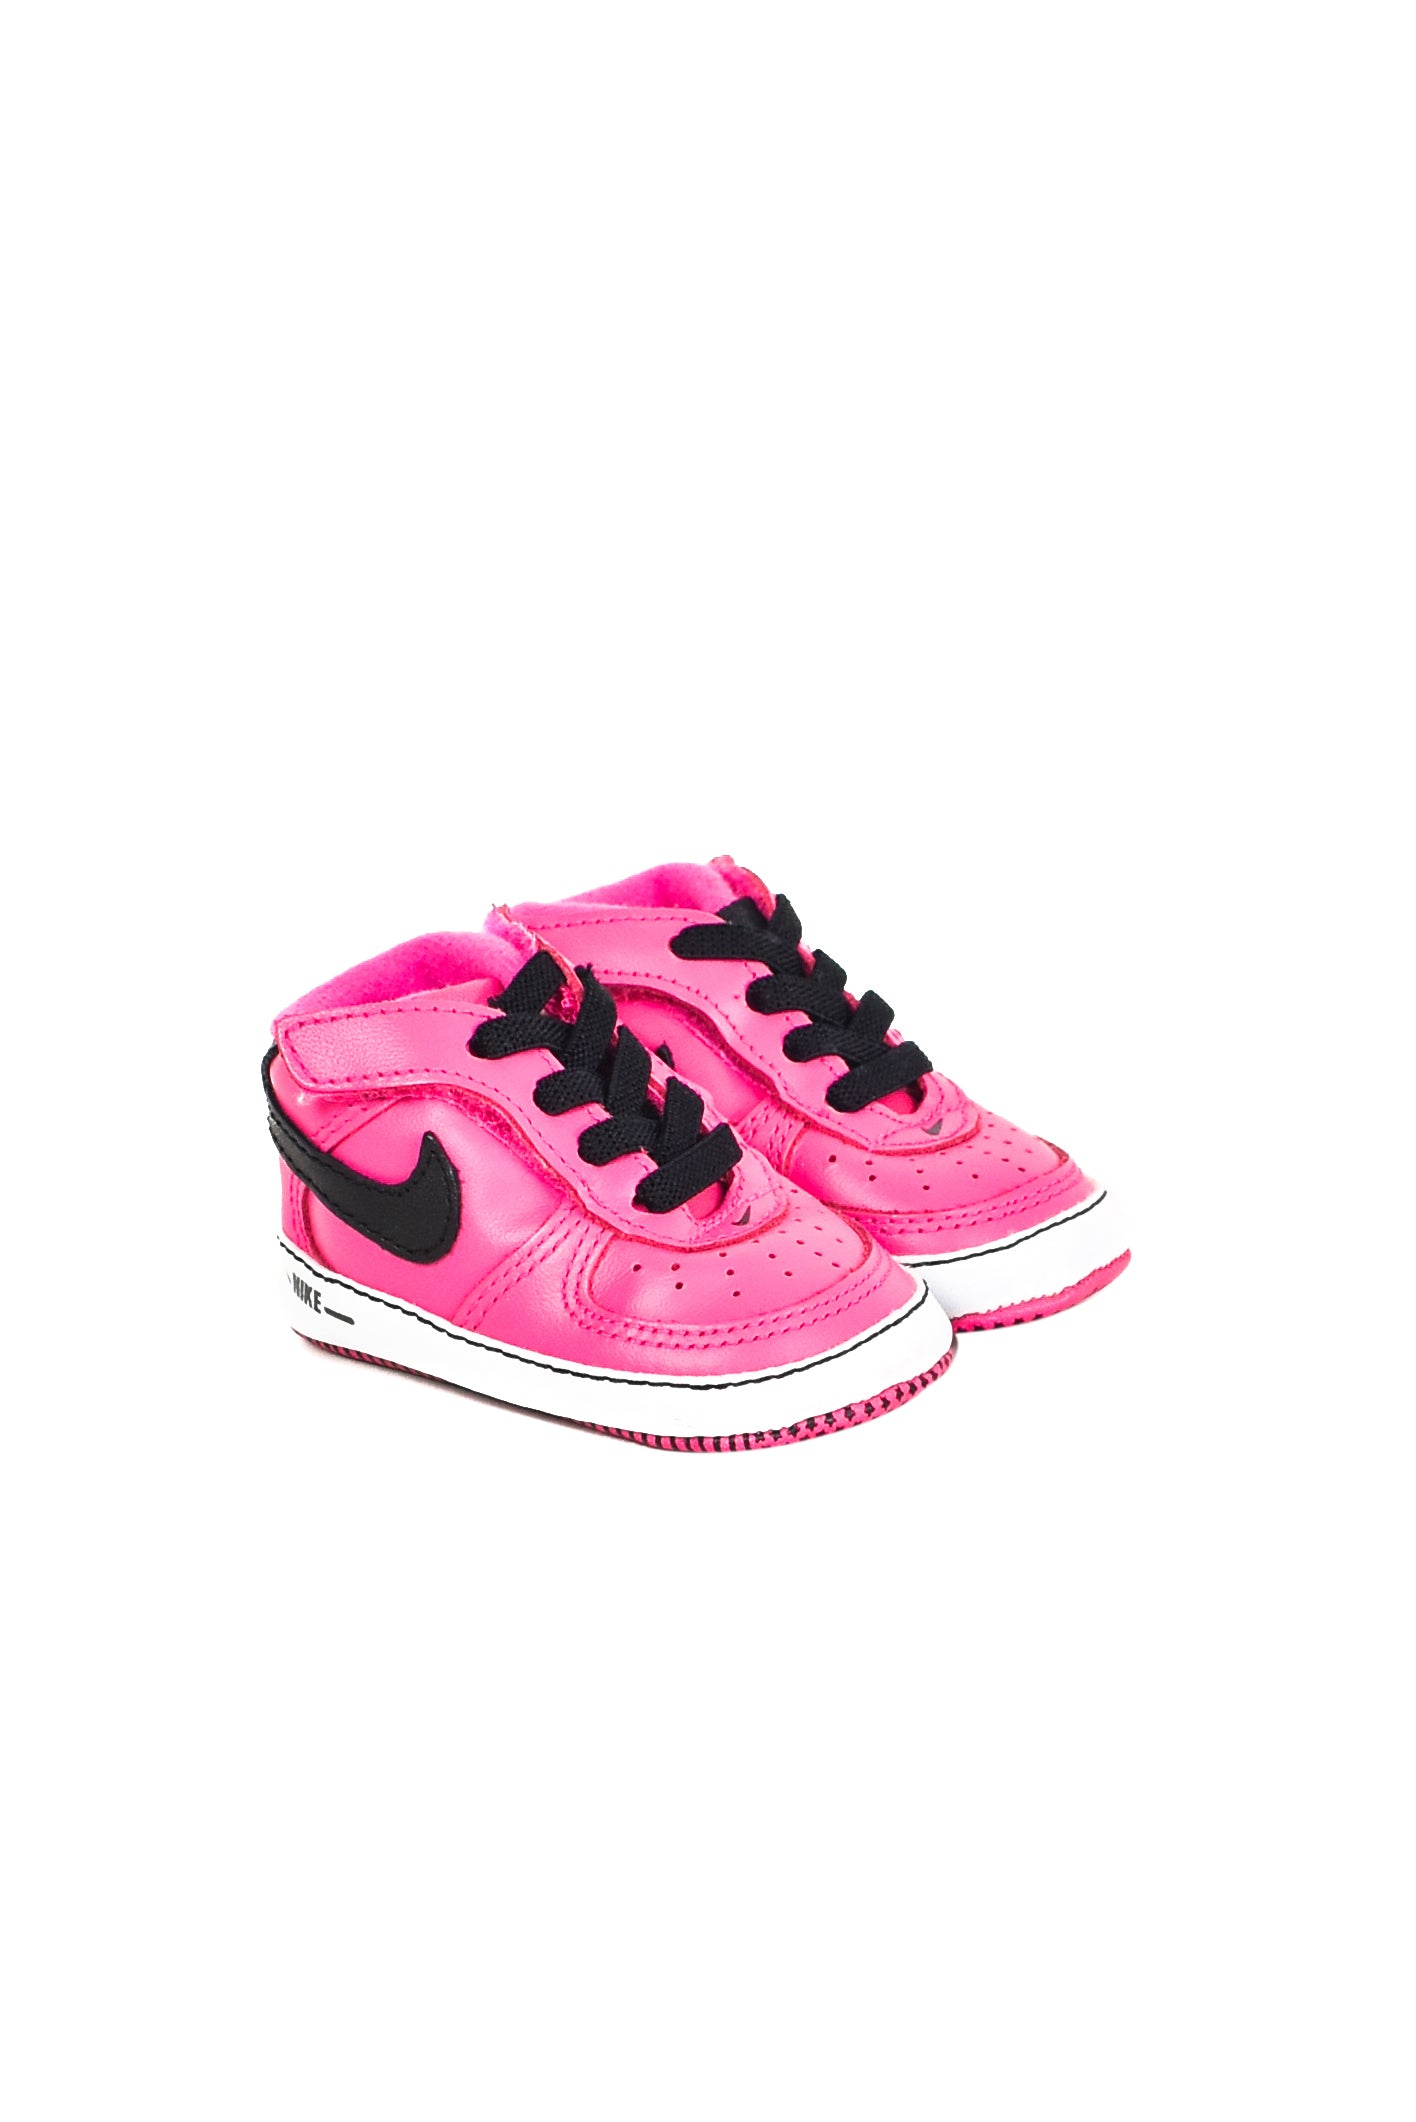 10013474 Nike Baby~Shoes 3-6M (US 2) at Retykle